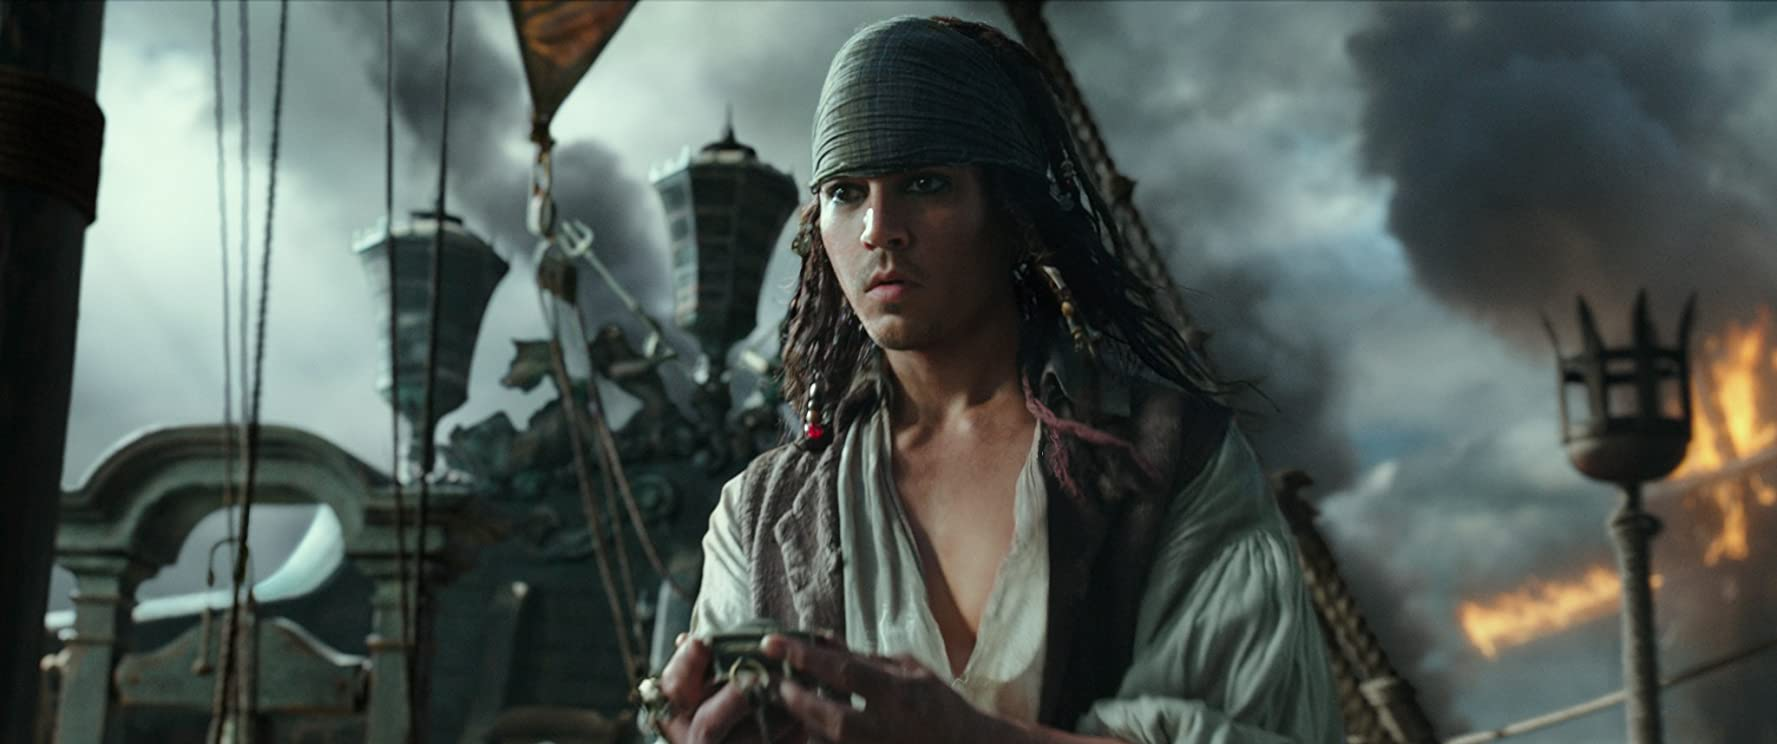 Anthony De La Torre in Pirates of the Caribbean: Dead Men Tell No Tales (2017)